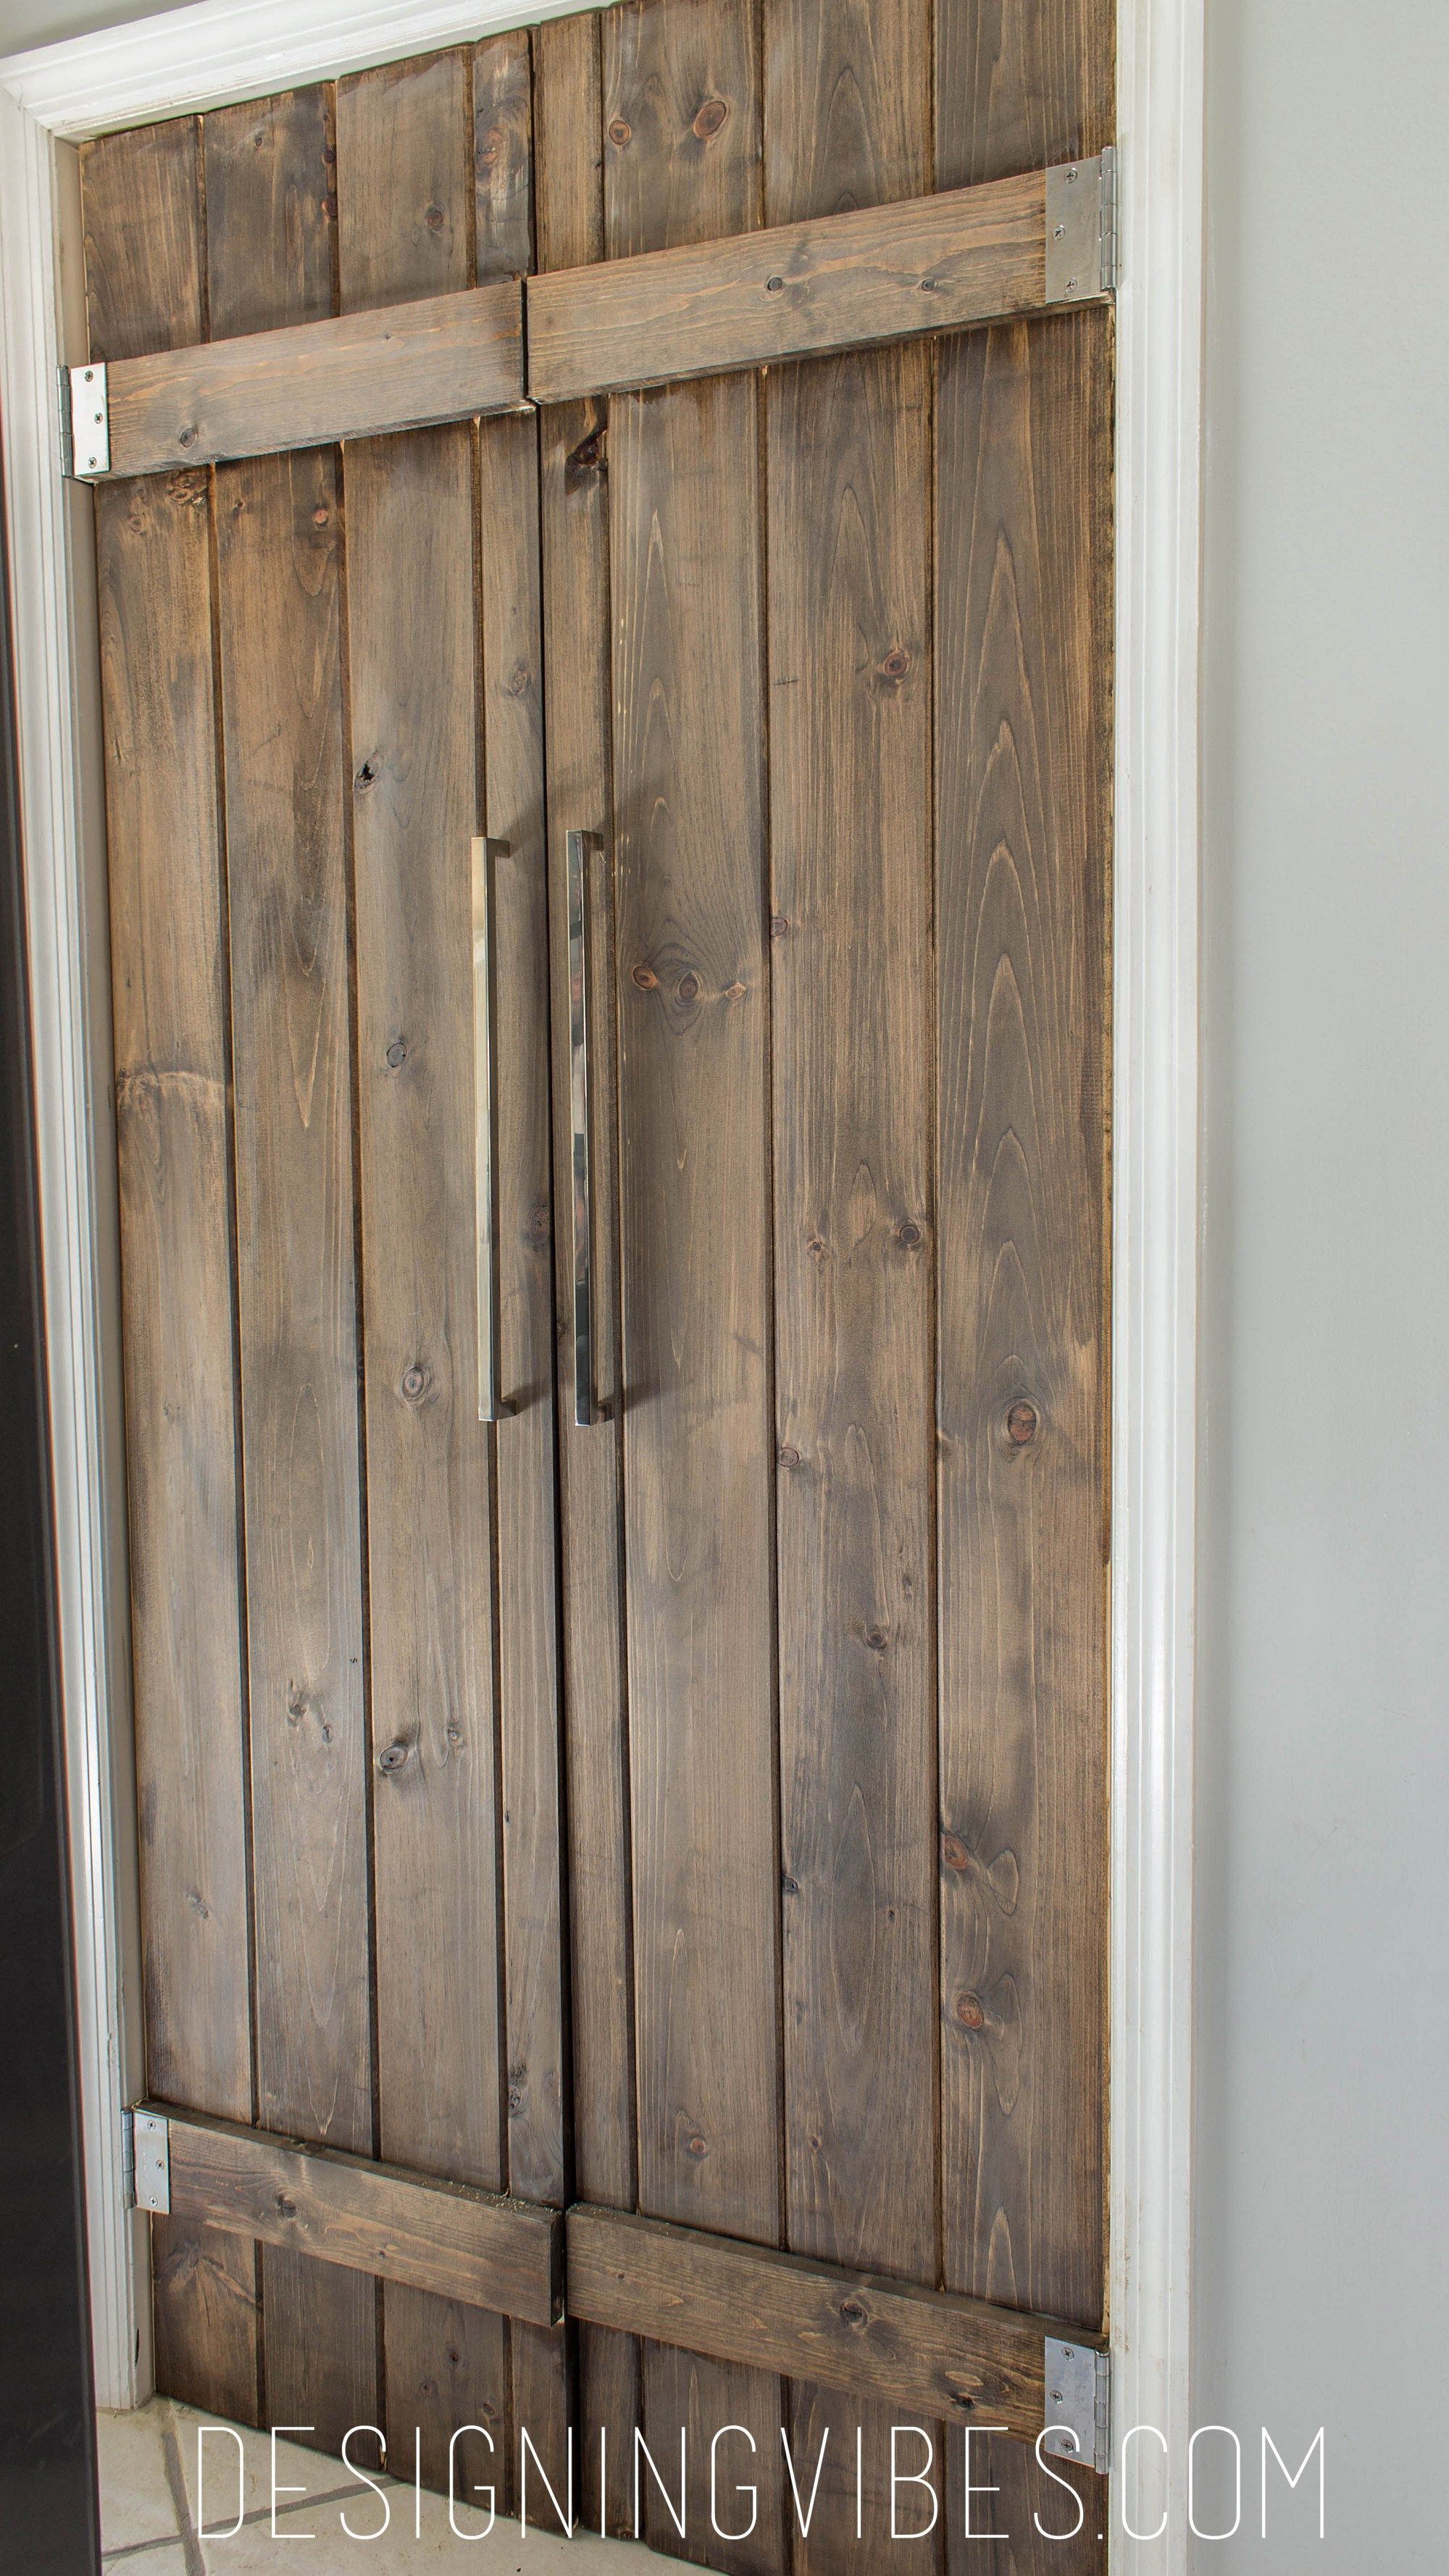 interior barns for caster doors home exterior trailer cover lowes designs gallery hardware closets wheels systems sliding depot excellent track inspiration door style best splendid barn canada closet